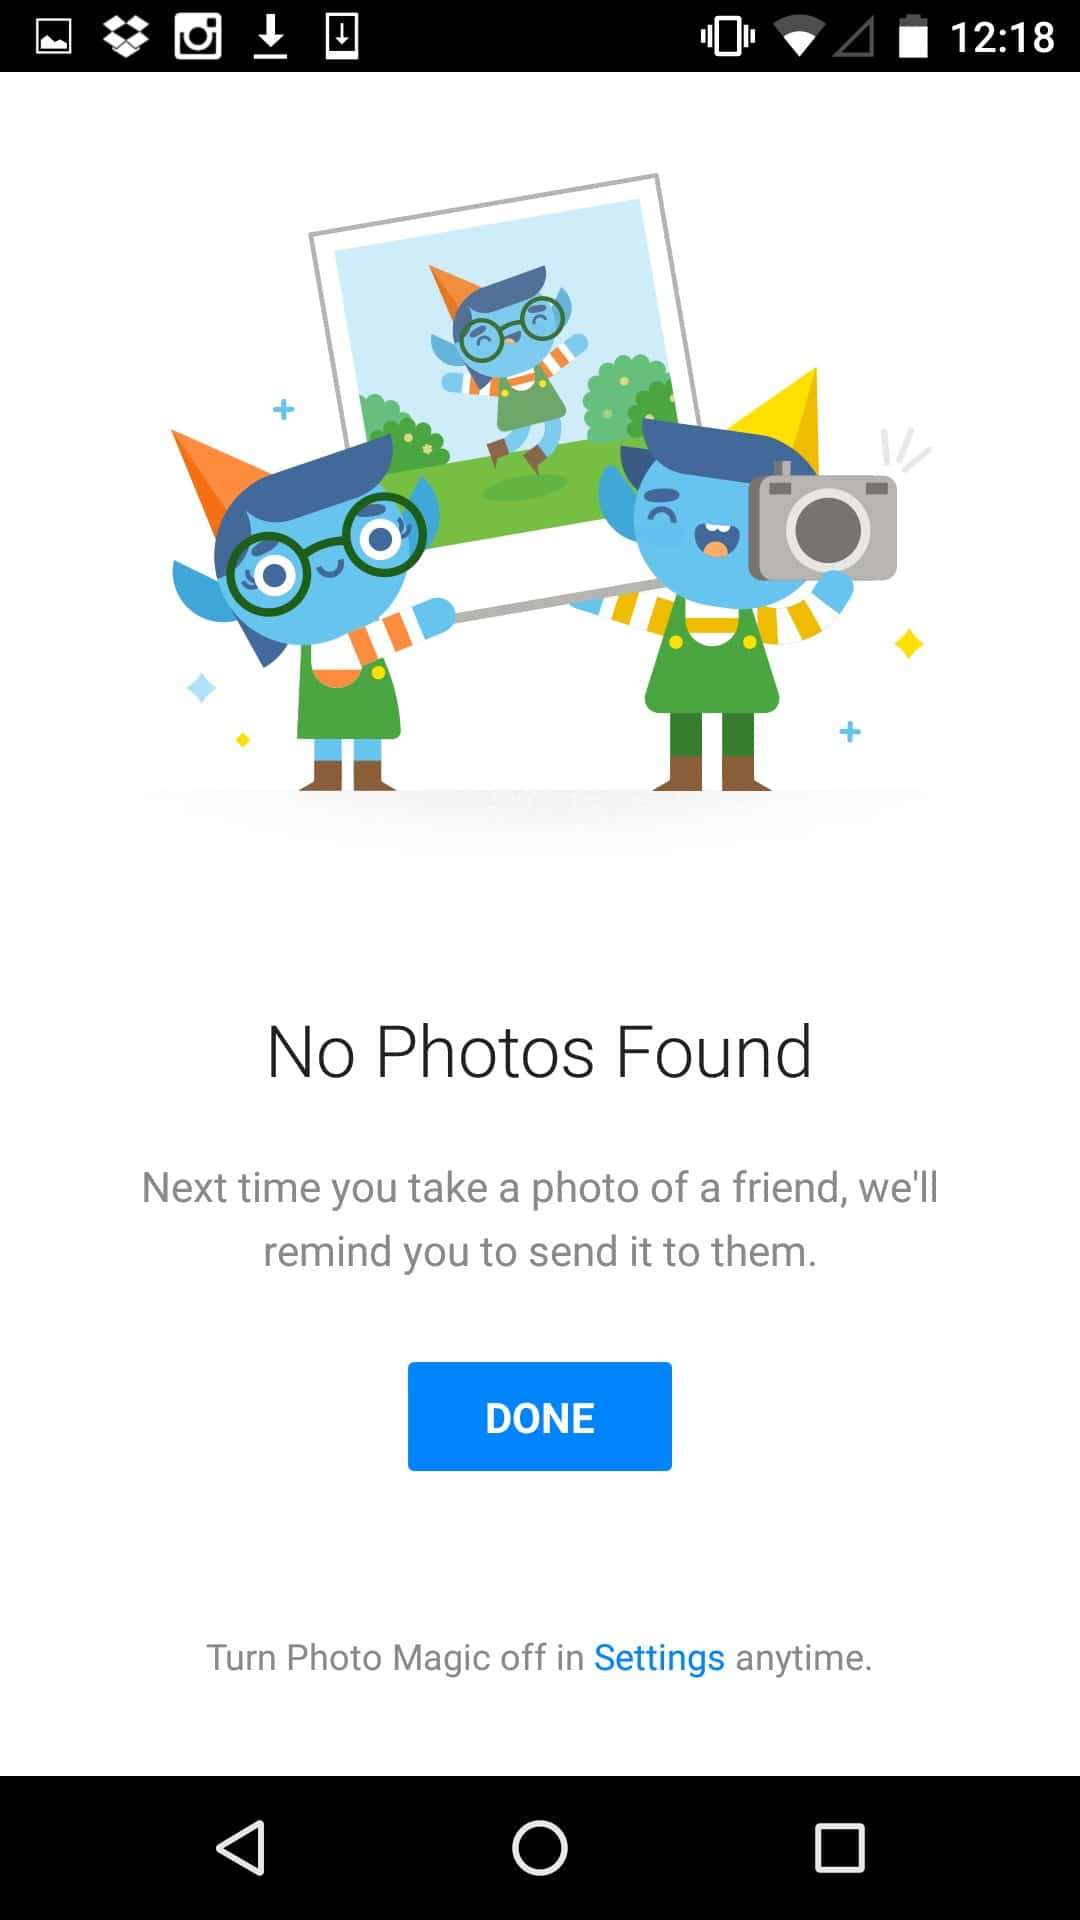 Empty state by Facebook from UIGarage